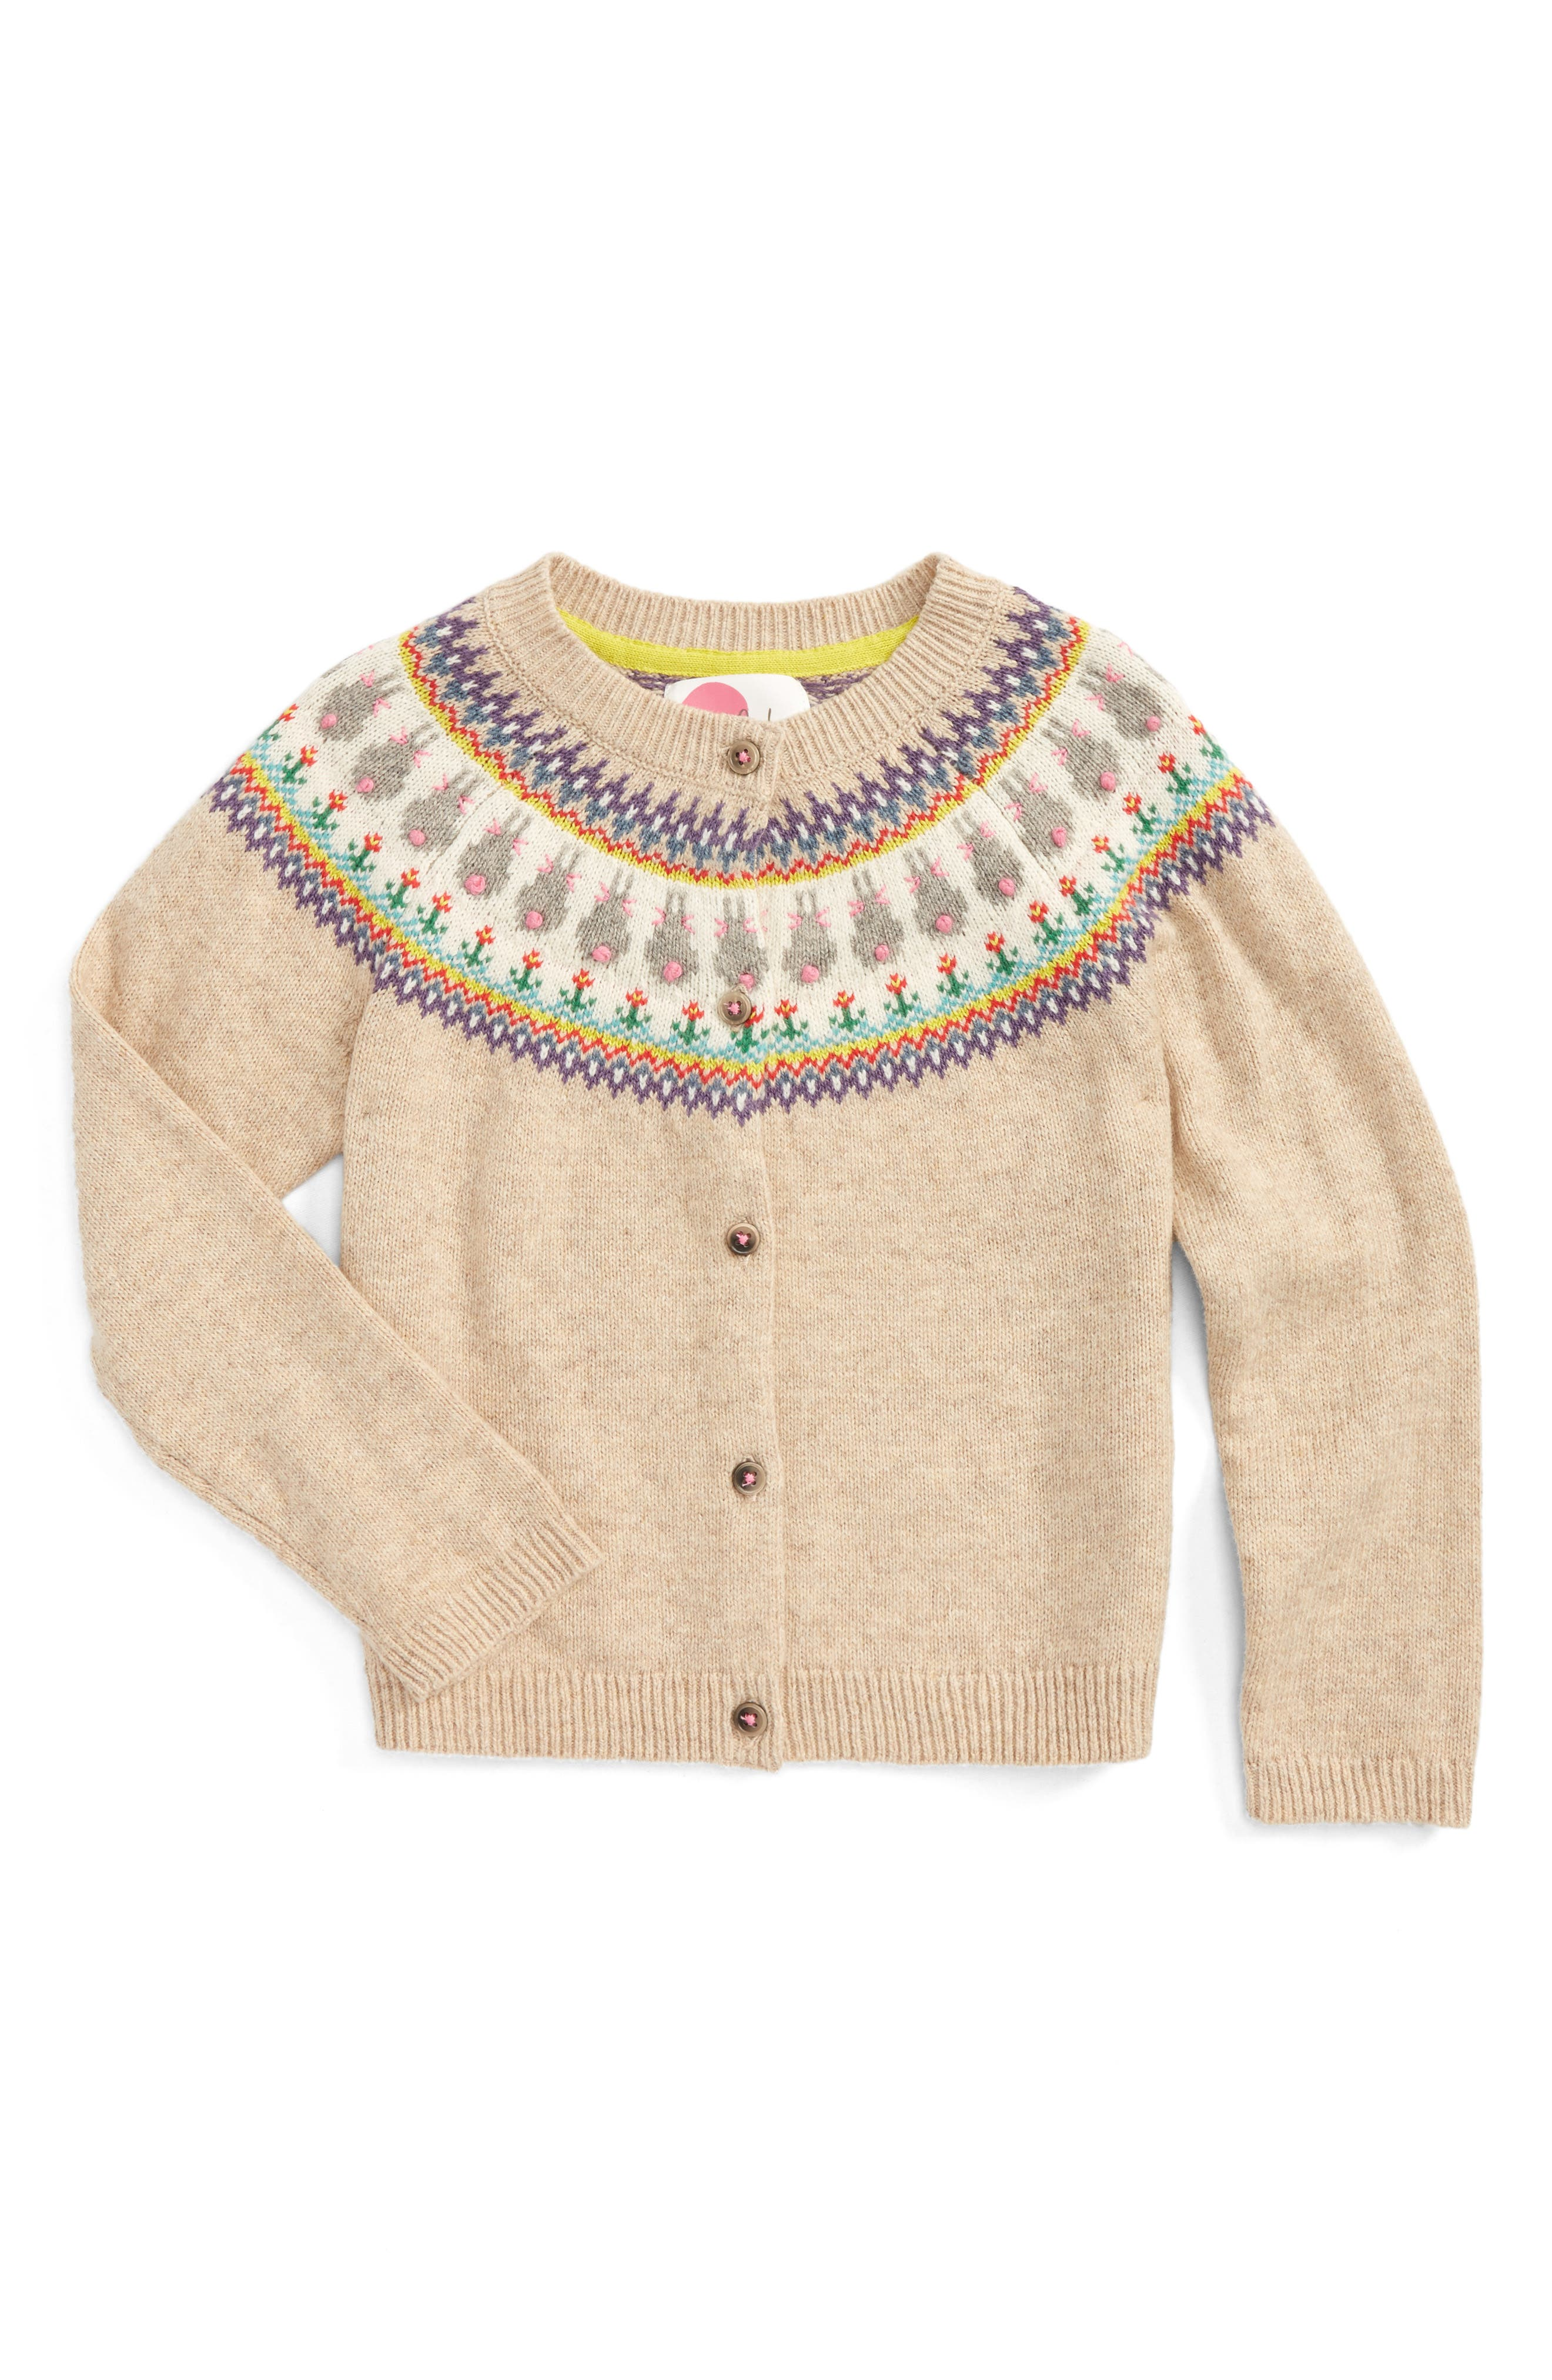 Mini Boden Fair Isle Cardigan (Toddler Girls, Little Girls & Big Girls)